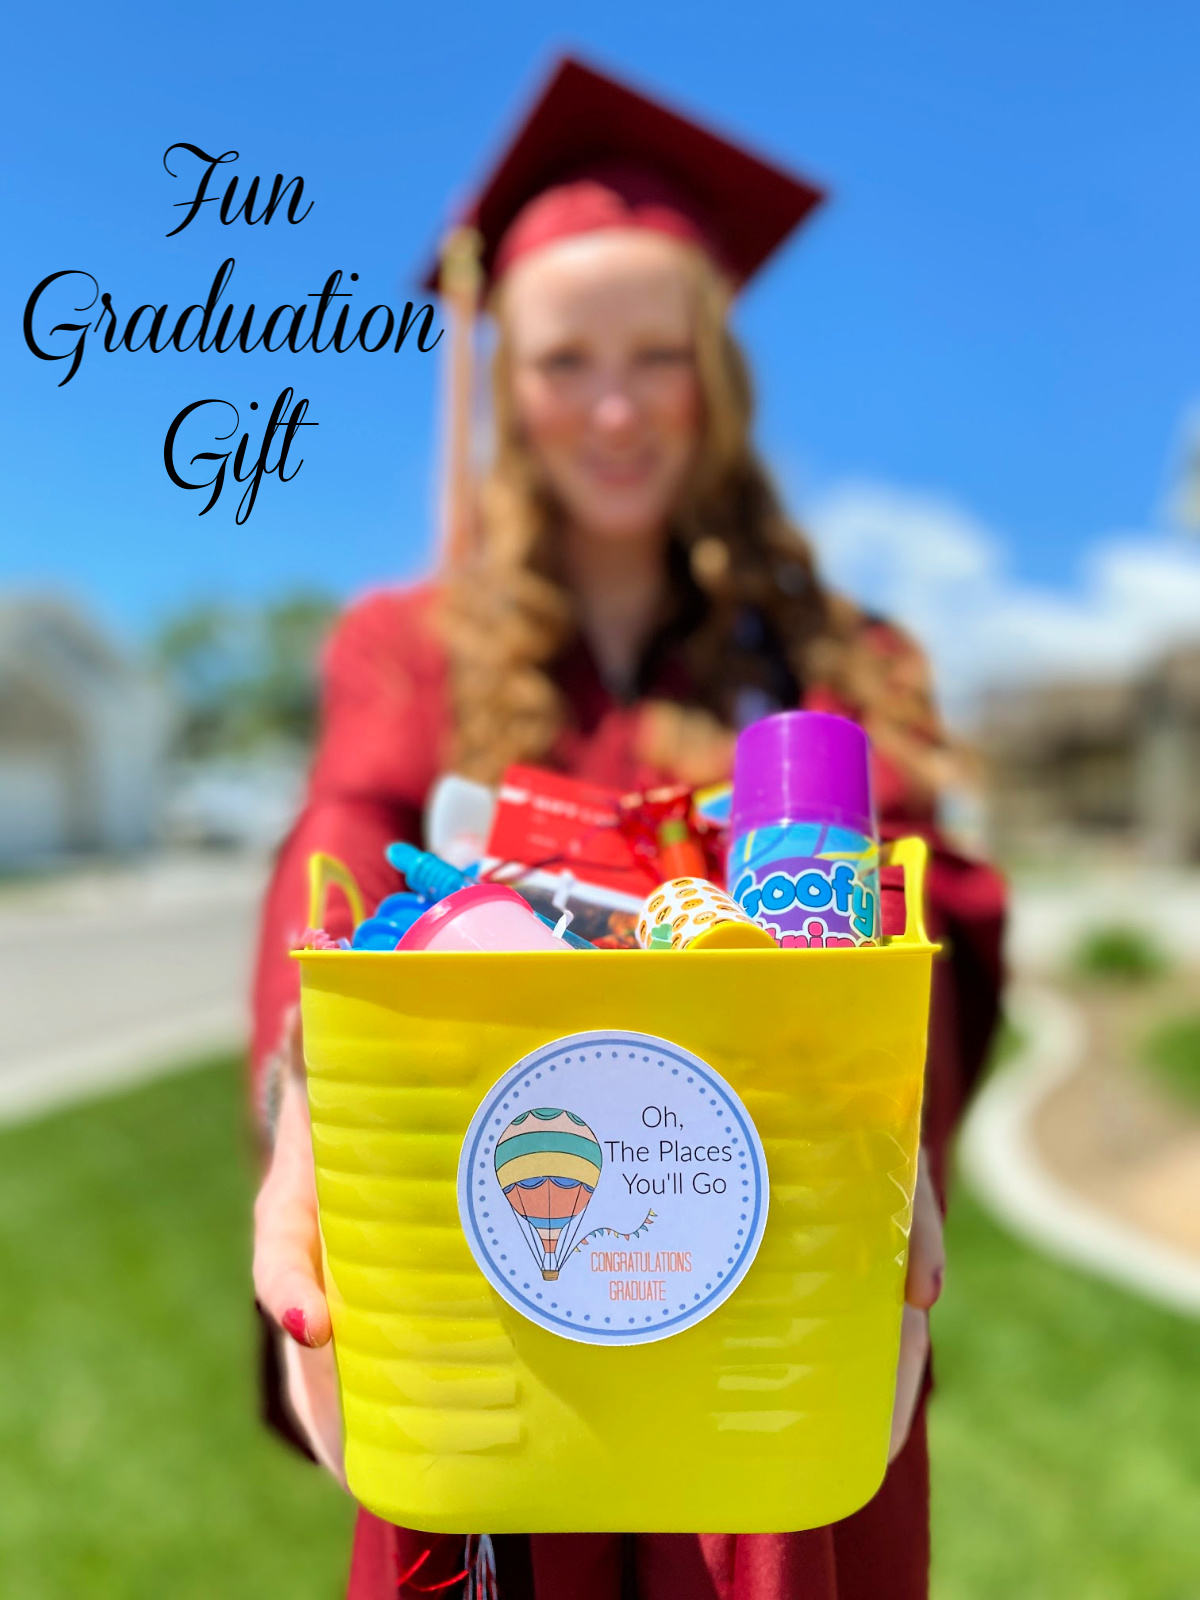 Fun Graduation Gift. This is a perfect gift for any graduate and a really simple way to say congratulations. #fungradgift #graduationgift #graduationgiftideas #gradgifts